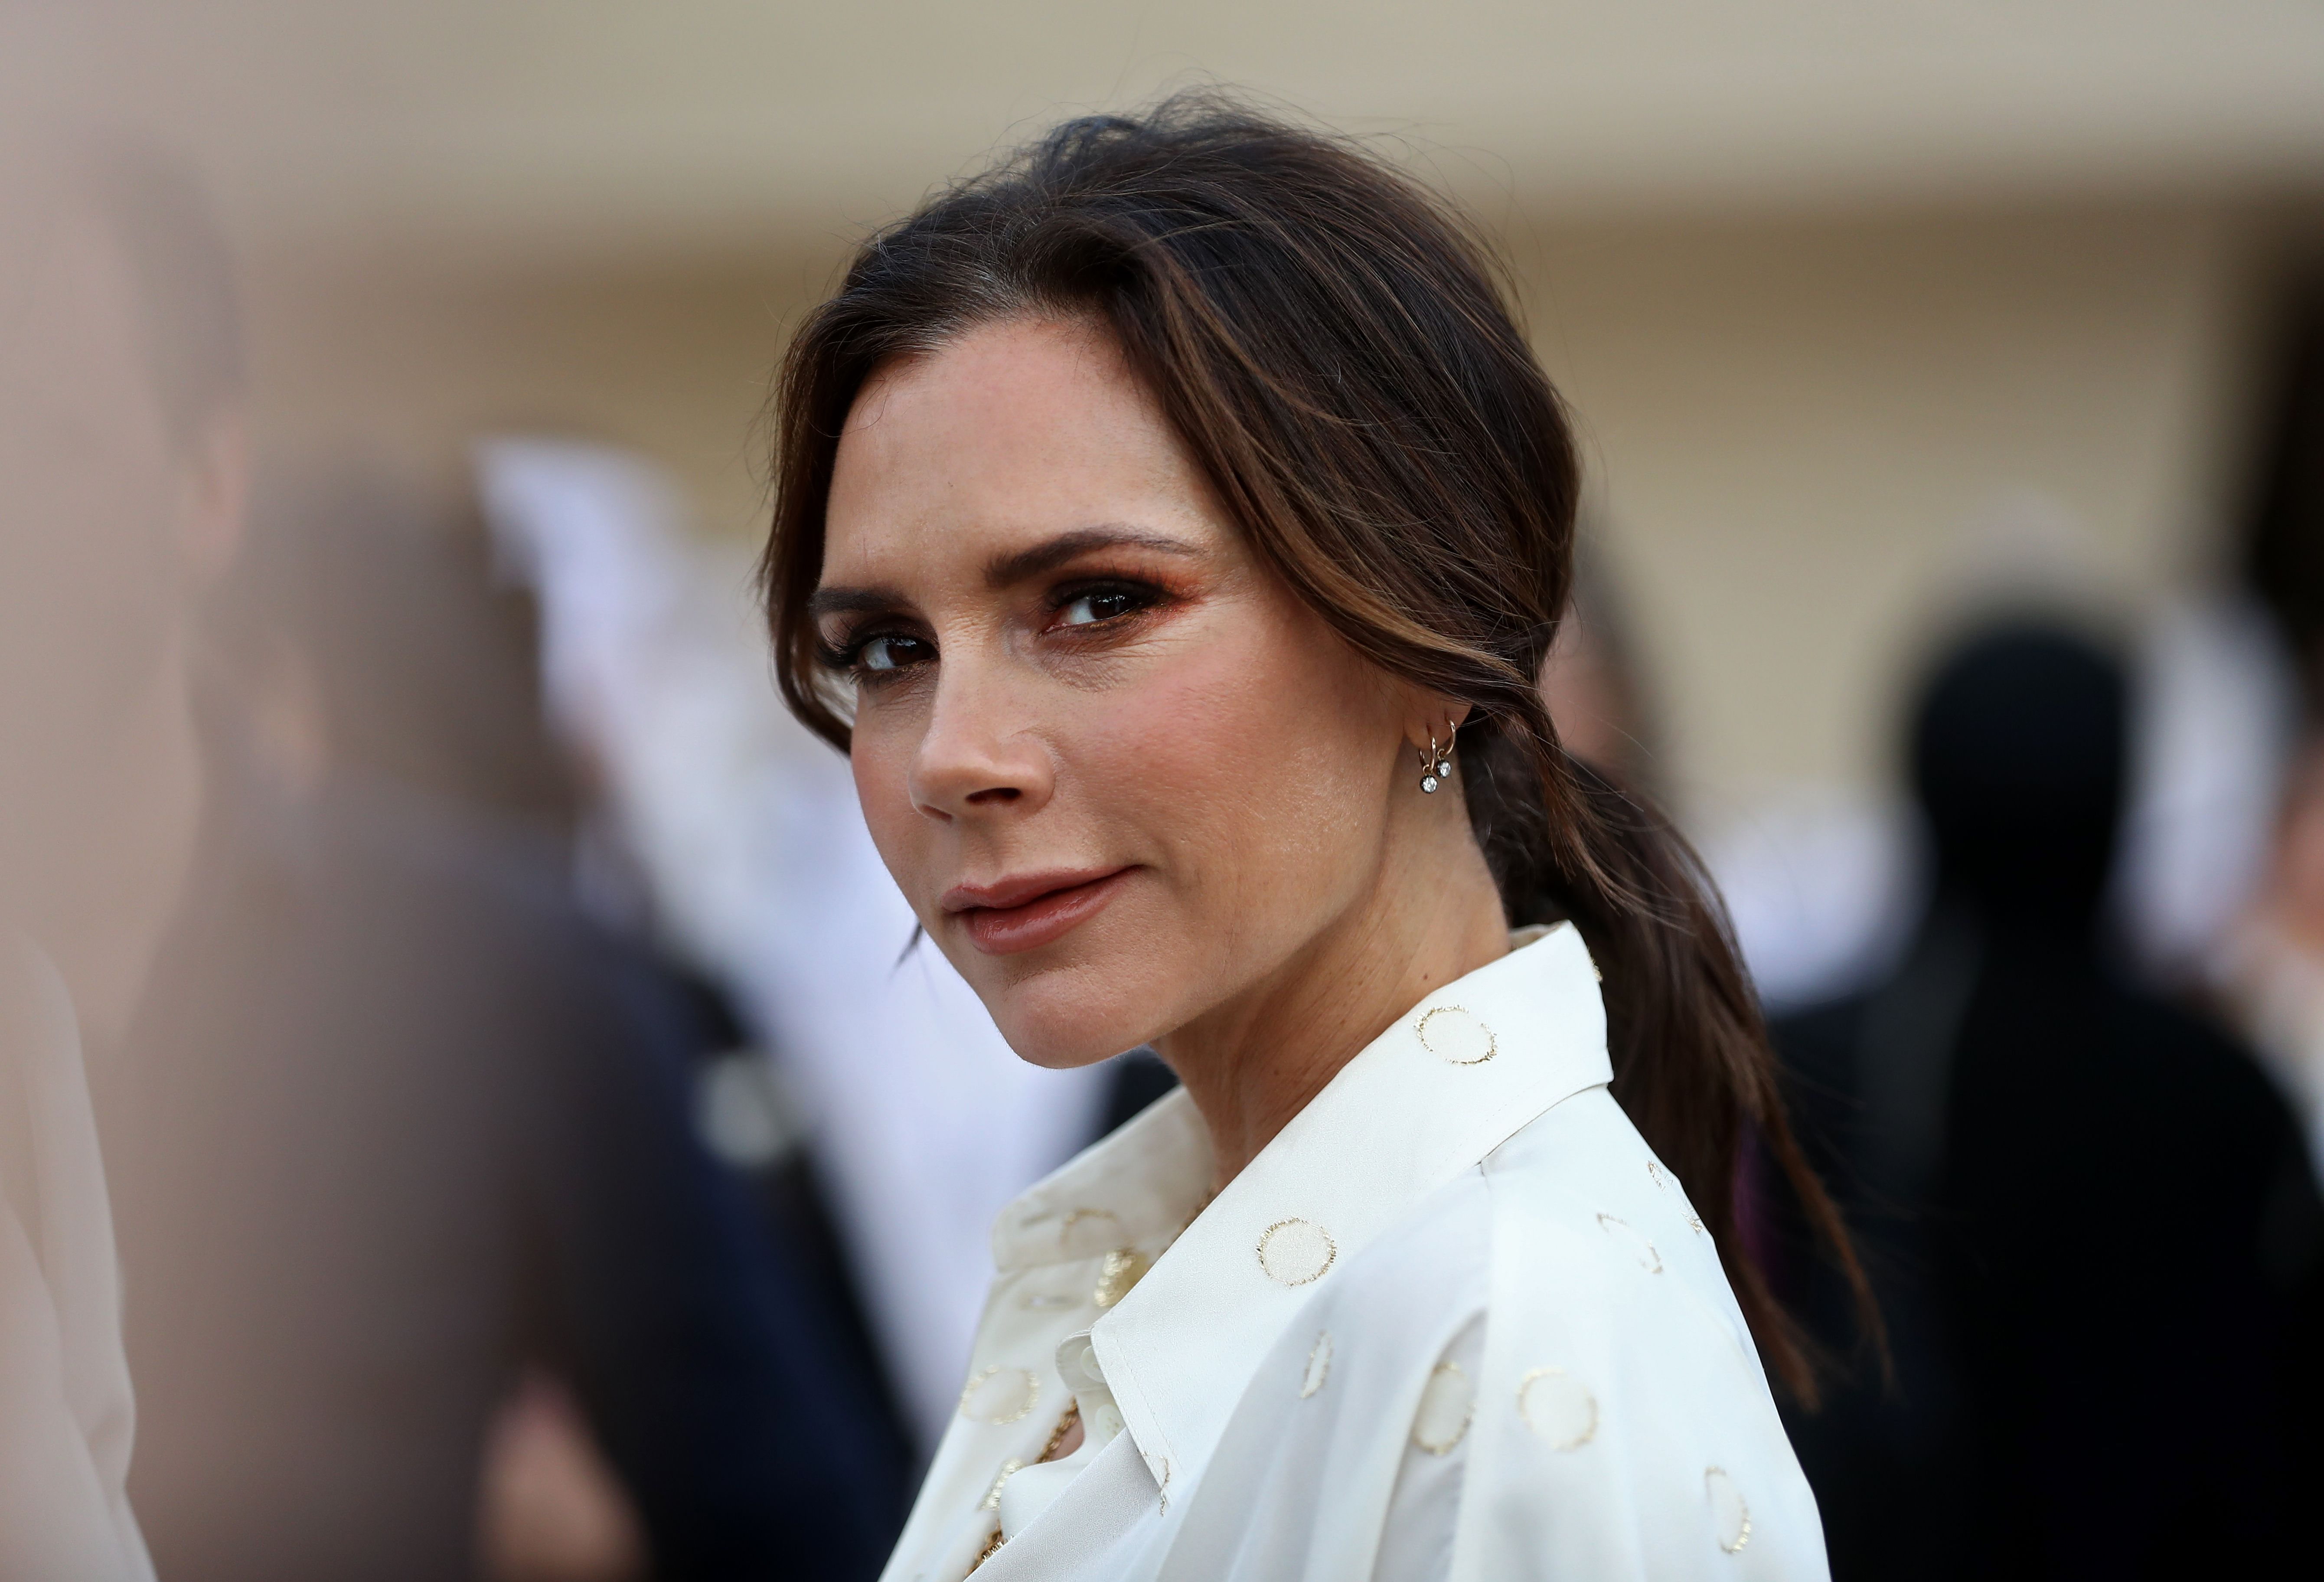 Victoria Beckham Pokes Fun At Missing The Spice Girls Tour